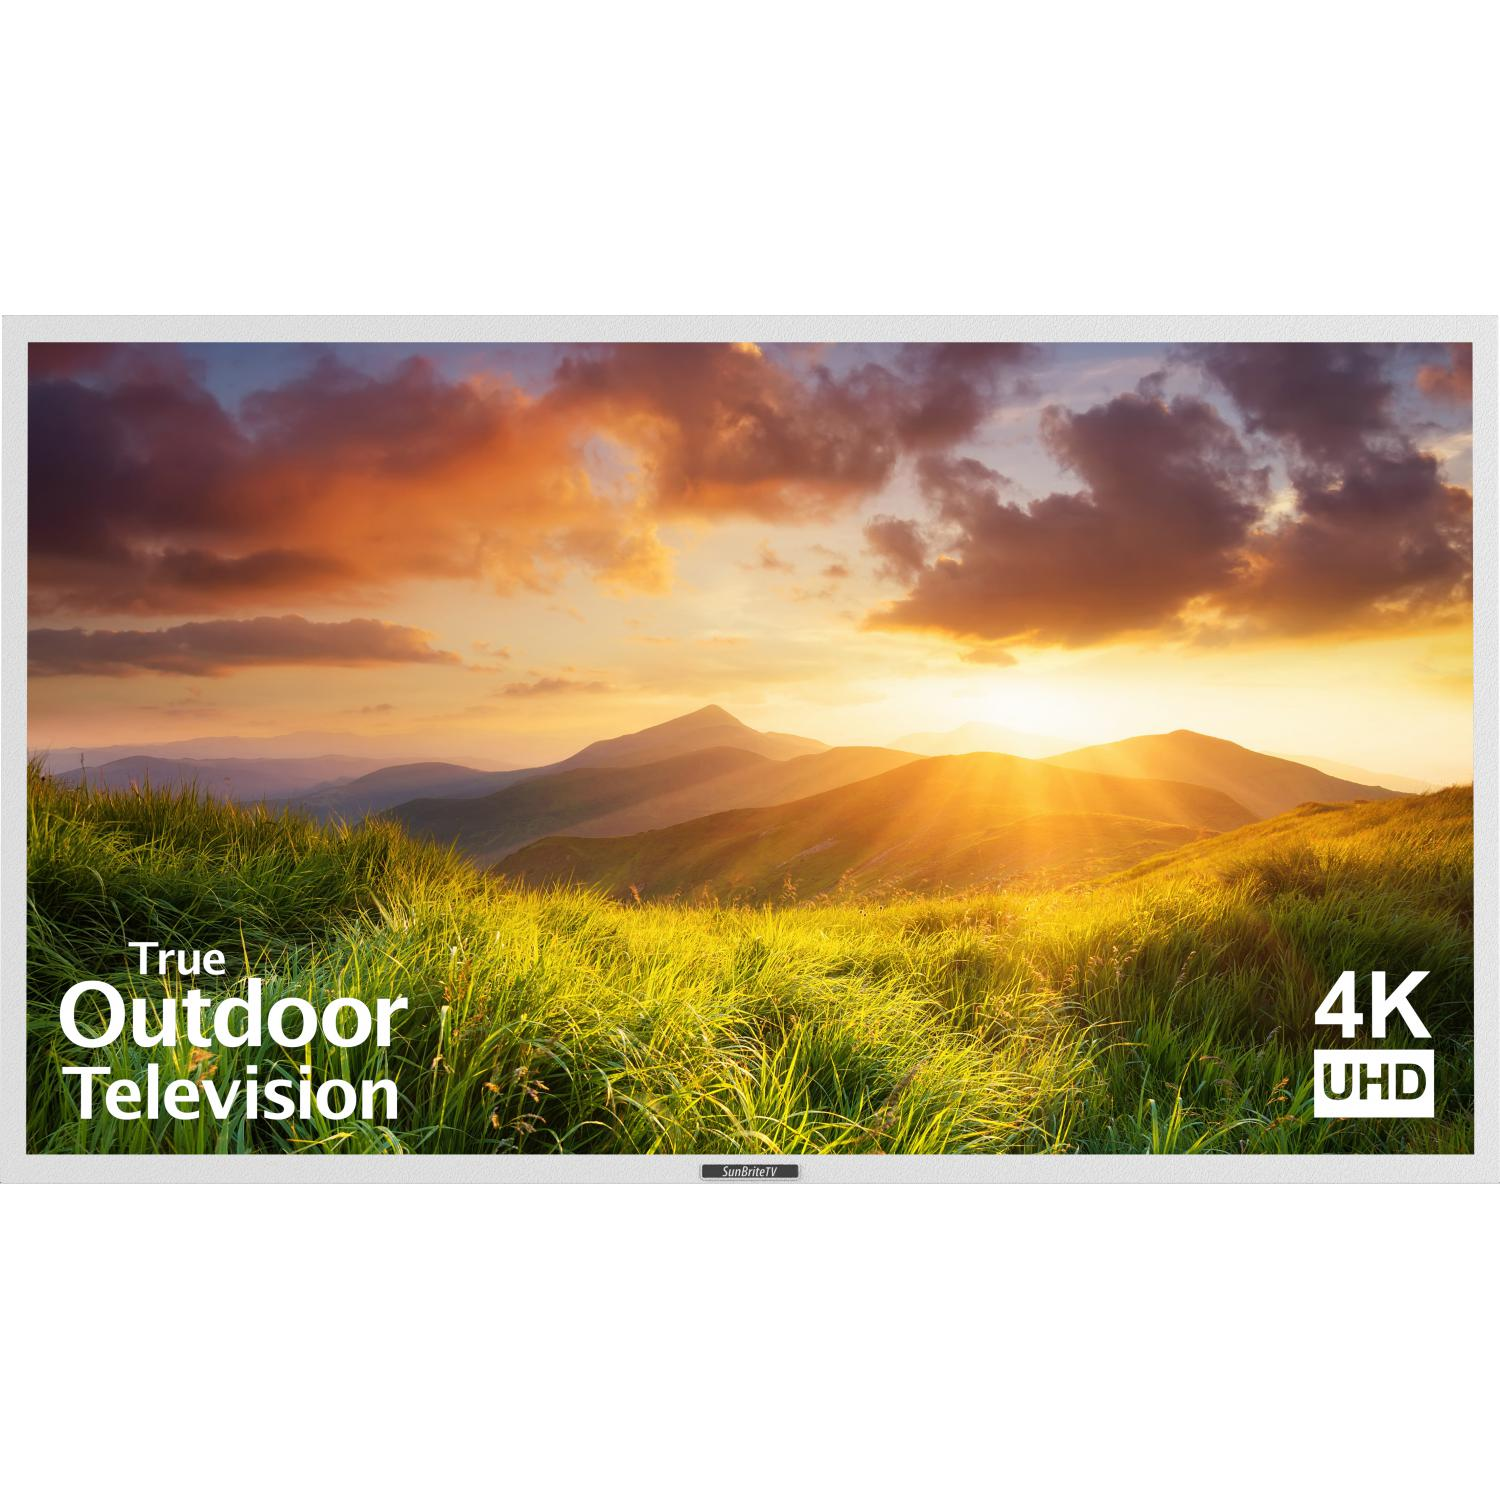 Sunbrite Tv Signature Series 65-Inch 4K LED Outdoor UHDTV...